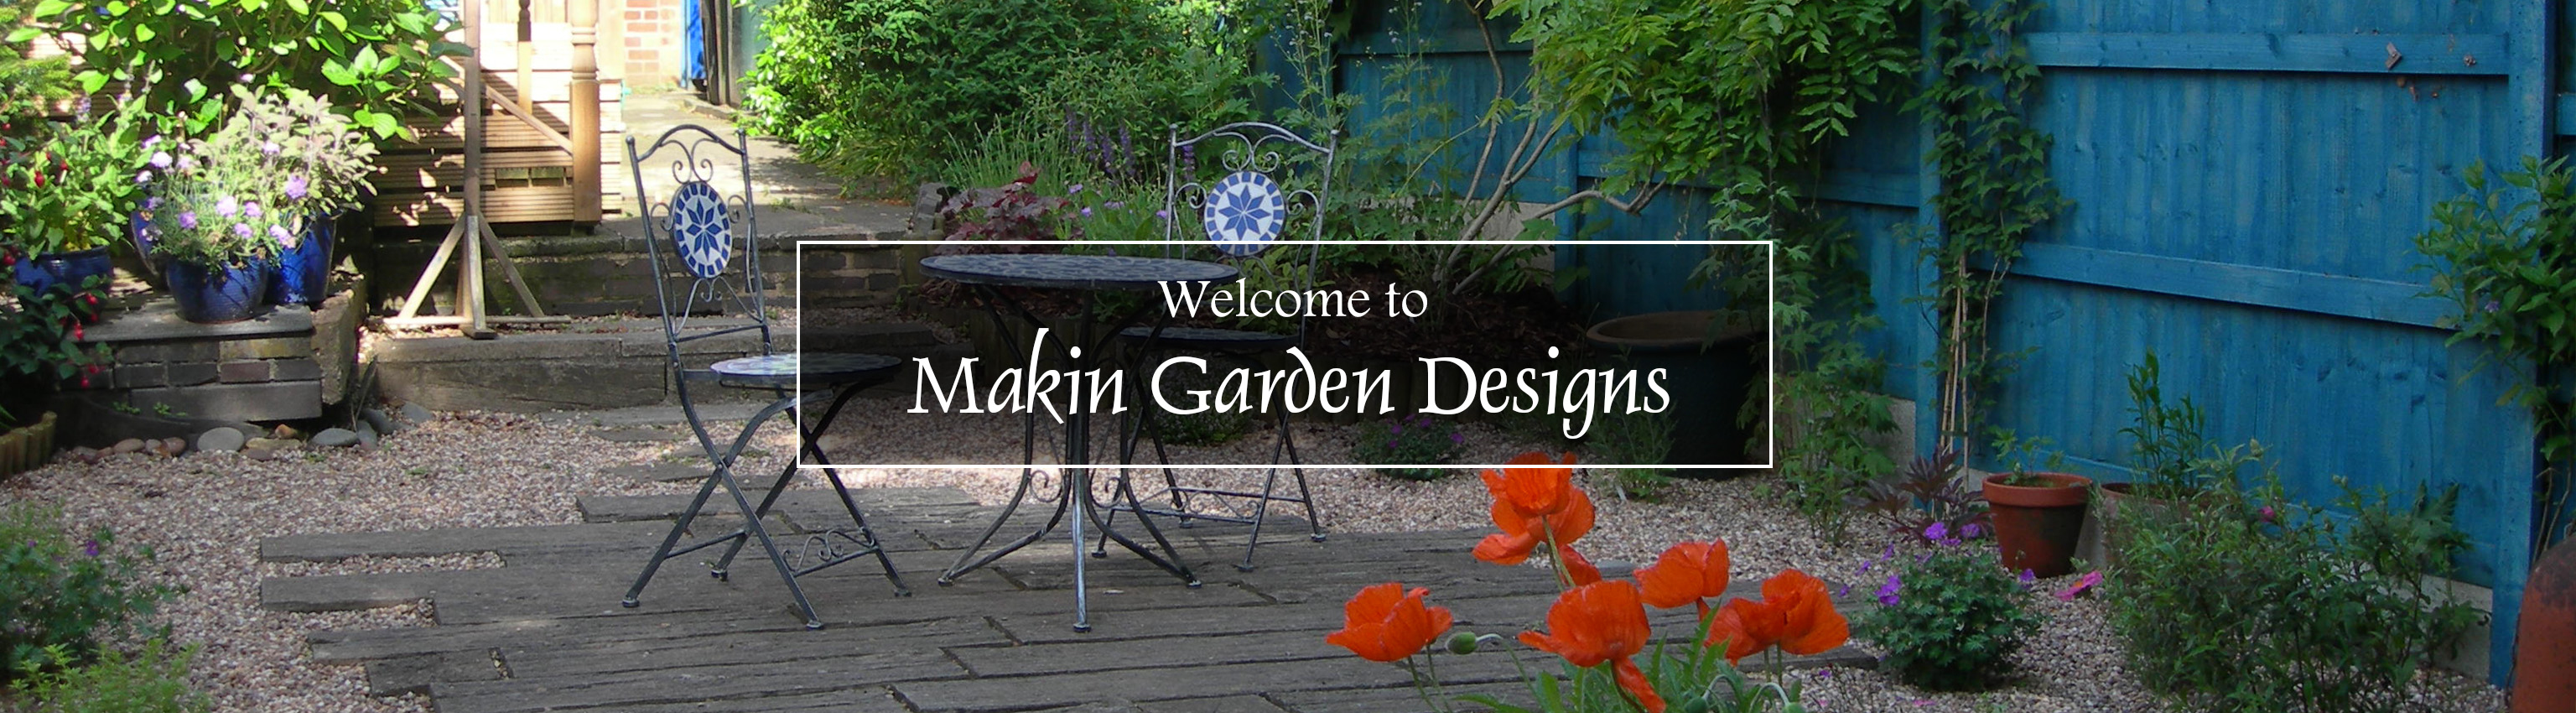 Marvellous Makin Garden Designs  Garden Design Sutton Coldfield With Lovable Home  Services  Full Garden Design Service  With Archaic Sandhills Garden Centre Also Garden Trolleys On Wheels In Addition Poisonous Garden Plants And London Garden Ideas As Well As Raised Herb Garden Beds Additionally  Volt Garden Lights From Makingardendesignscouk With   Lovable Makin Garden Designs  Garden Design Sutton Coldfield With Archaic Home  Services  Full Garden Design Service  And Marvellous Sandhills Garden Centre Also Garden Trolleys On Wheels In Addition Poisonous Garden Plants From Makingardendesignscouk